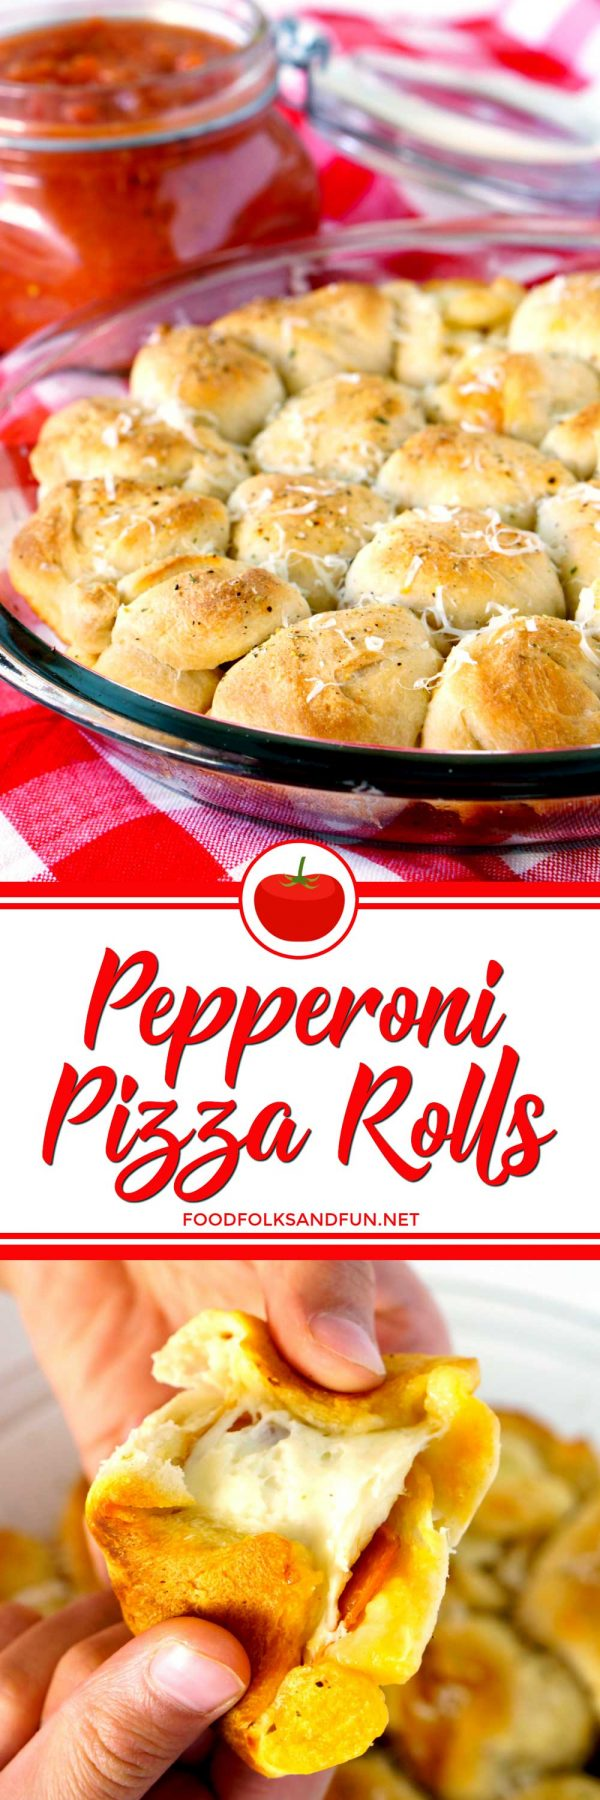 Pepperoni Pizza Rolls made in just 30 minutes.